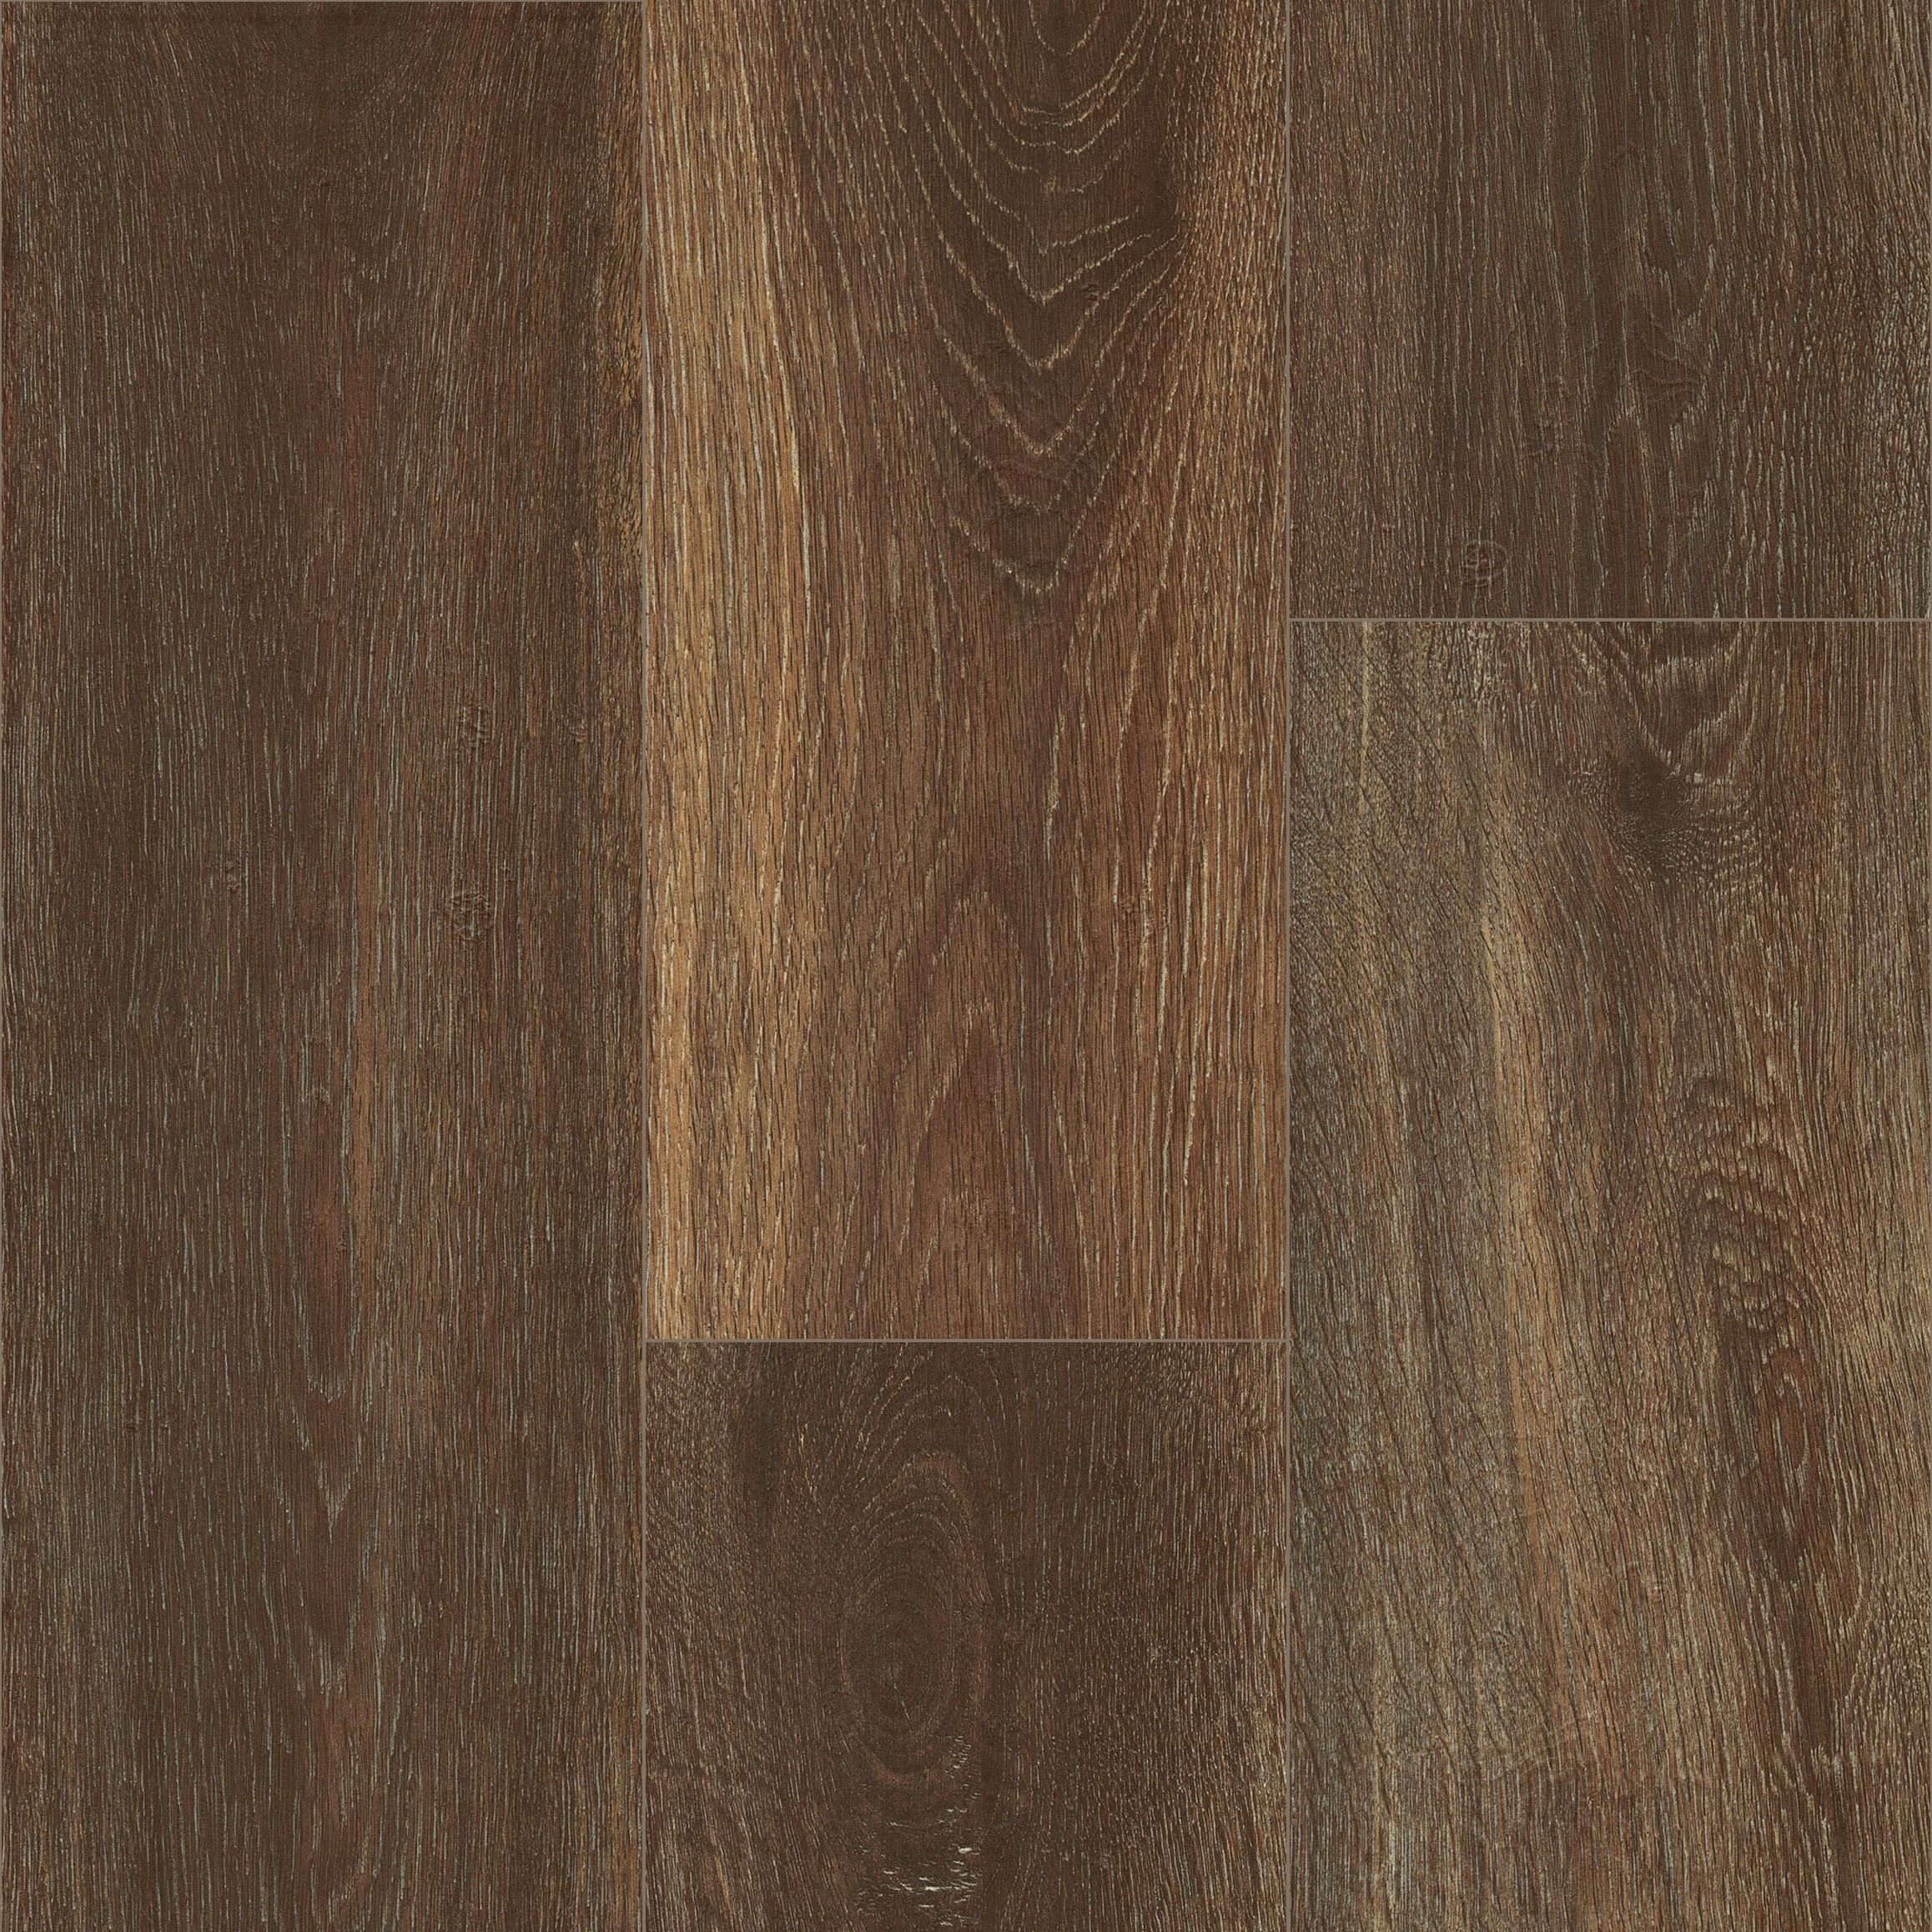 Master Design Manchester Oak Beveled Edge Laminate Flooring With Attached Pad Laminate Flooring Oak Laminate Flooring Laminate